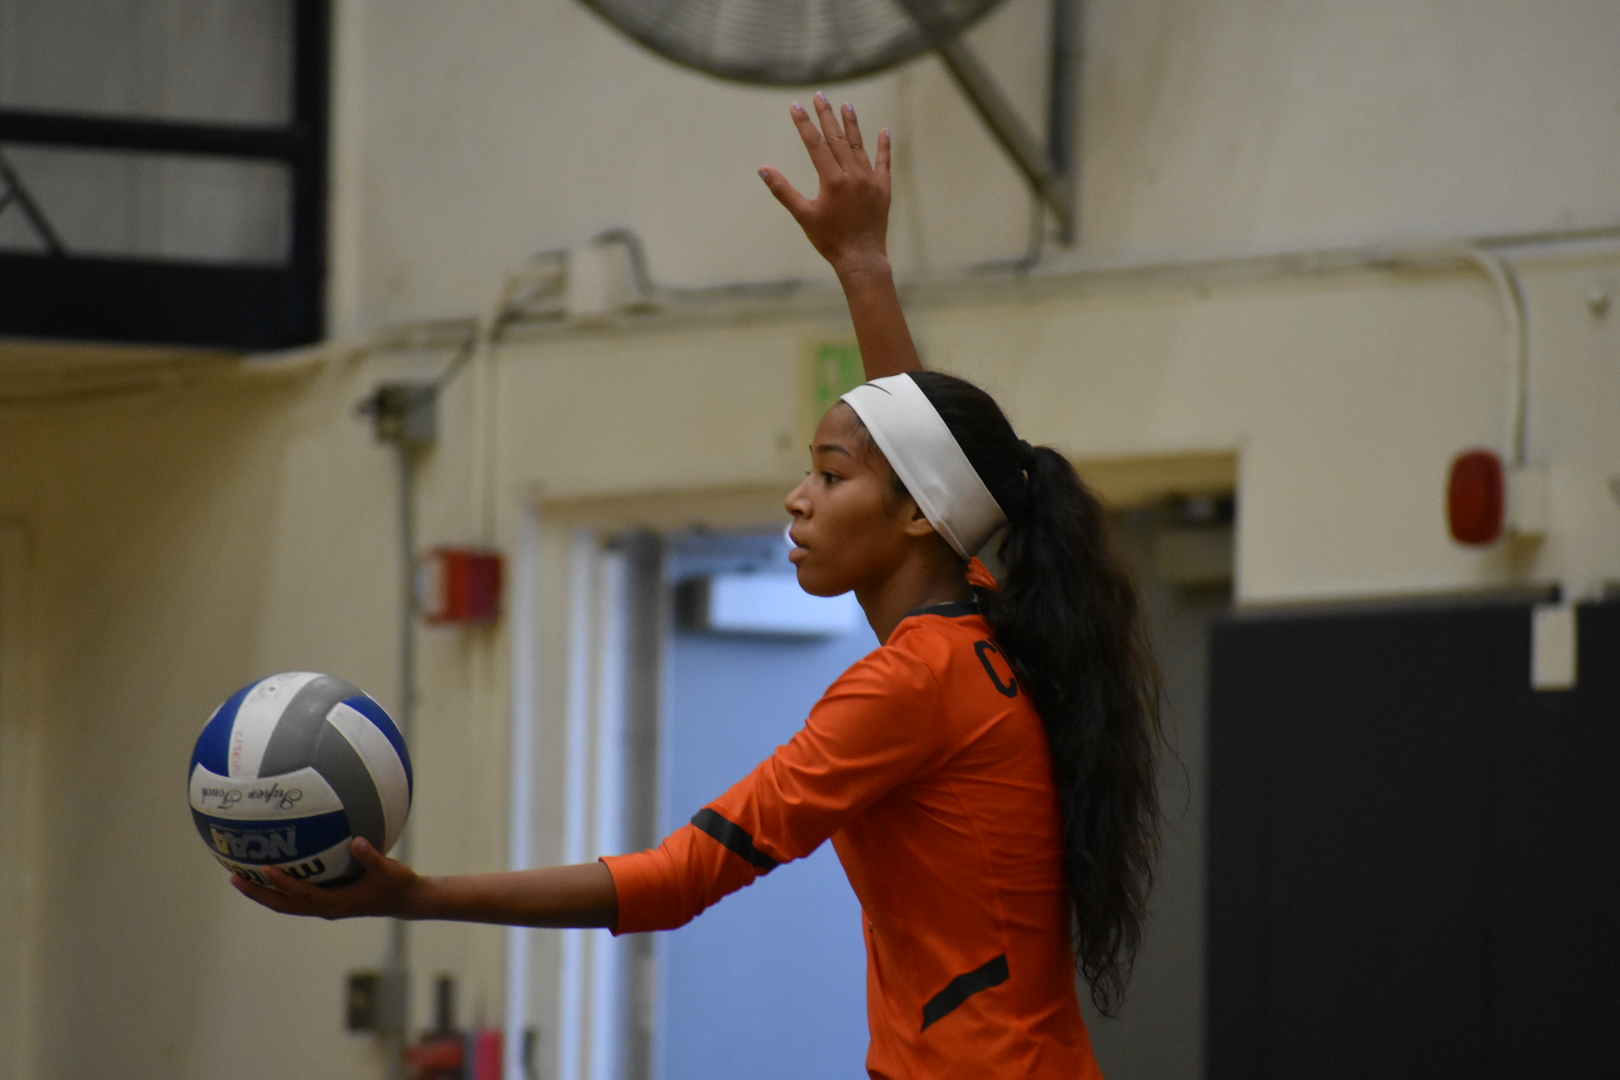 Setter Vanessa Warren focuses on her next serve. Image: Thomas Garcia